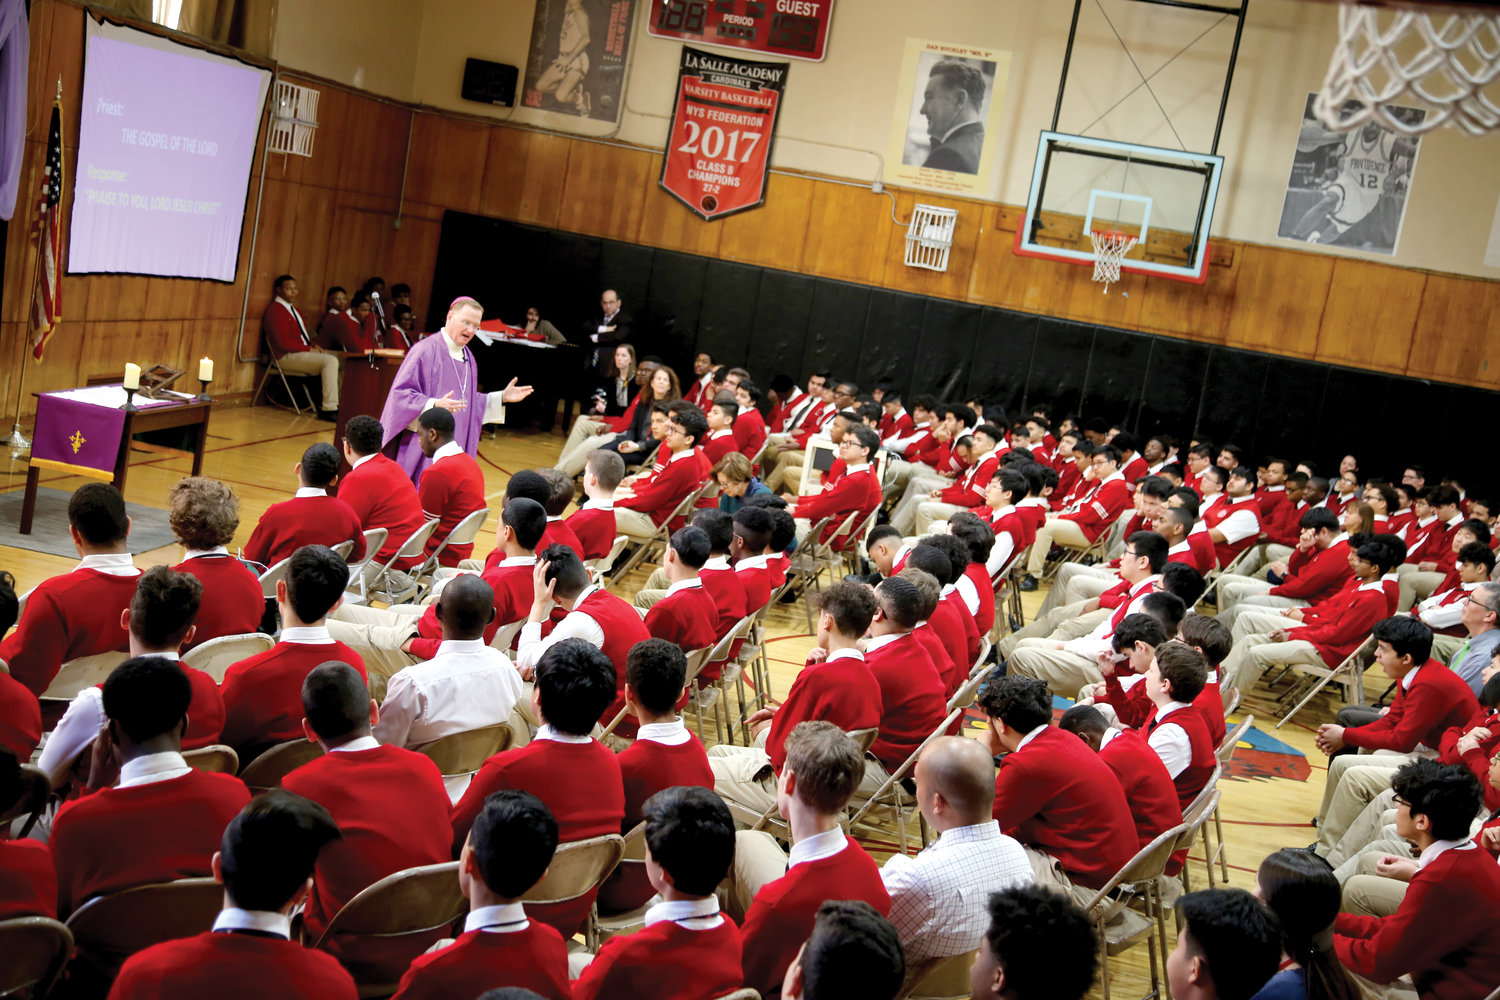 Auxiliary Bishop Edmund Whalen, vicar for clergy in the archdiocese, offers Mass March 2 at La Salle Academy, a boys' high school in lower Manhattan.